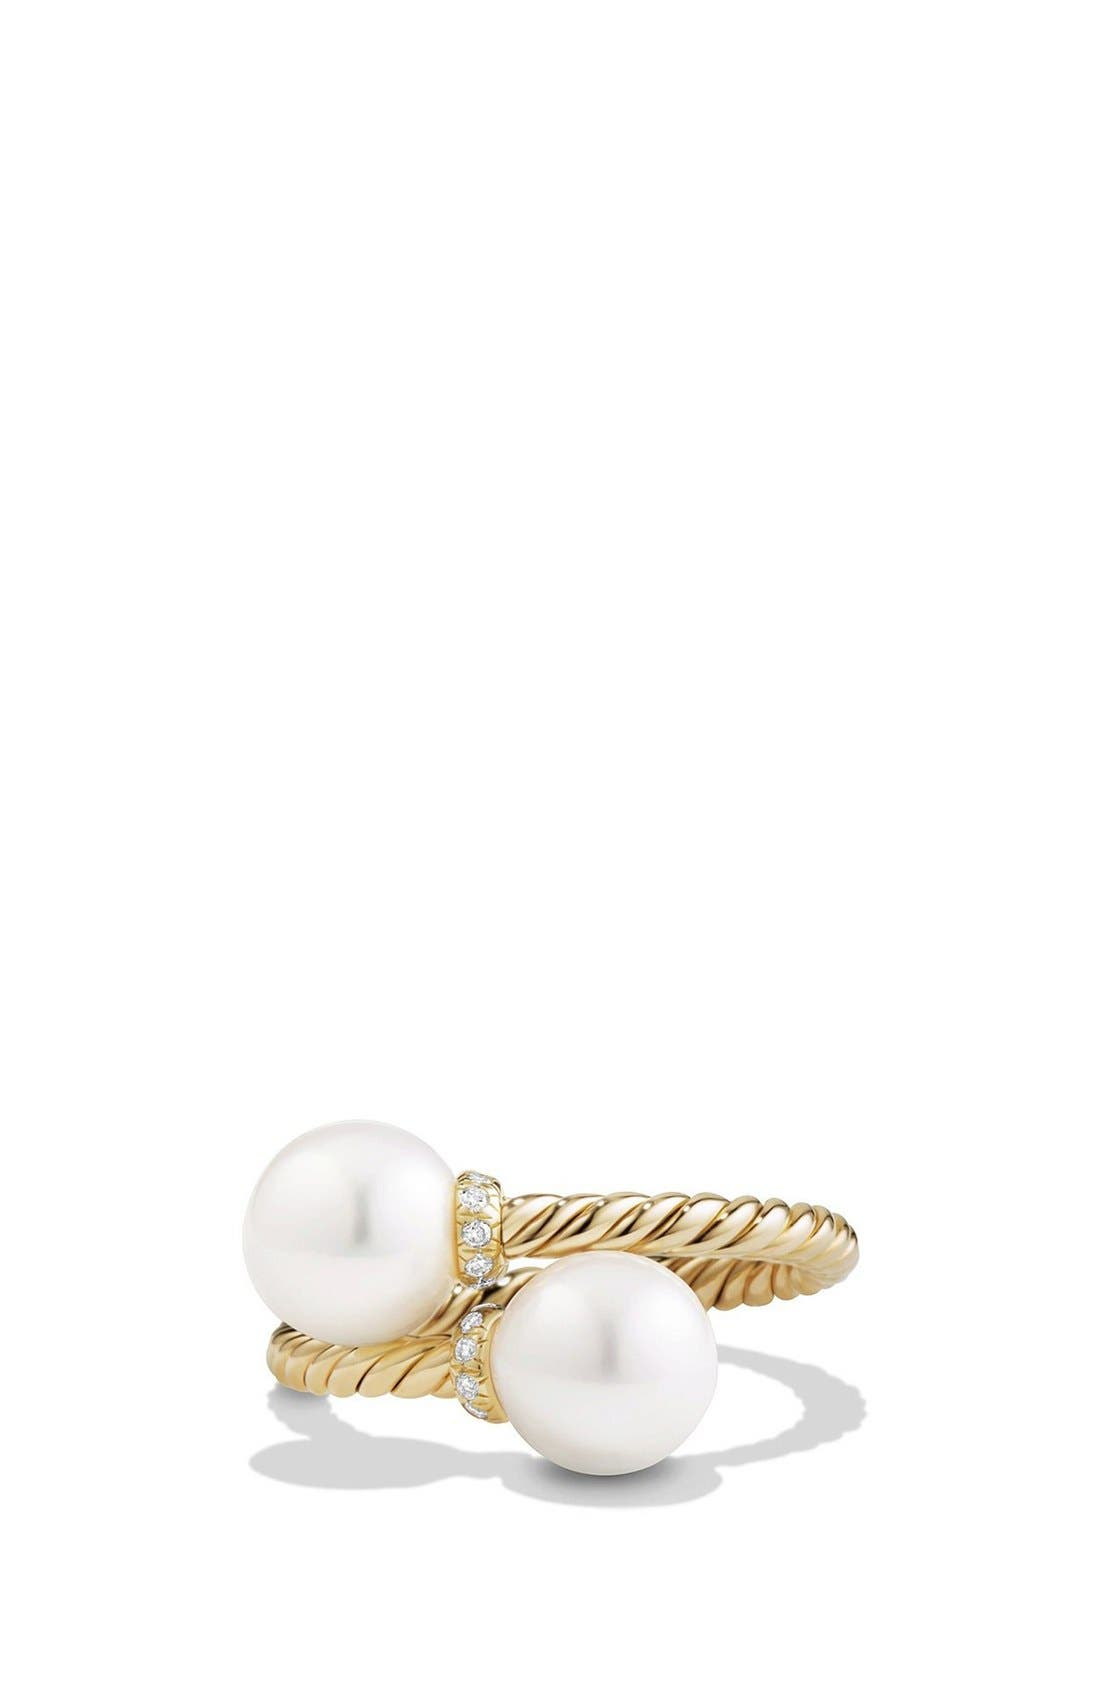 'Solari' Bead Ring with Diamonds and Pearls in 18K Gold,                         Main,                         color, PEARL